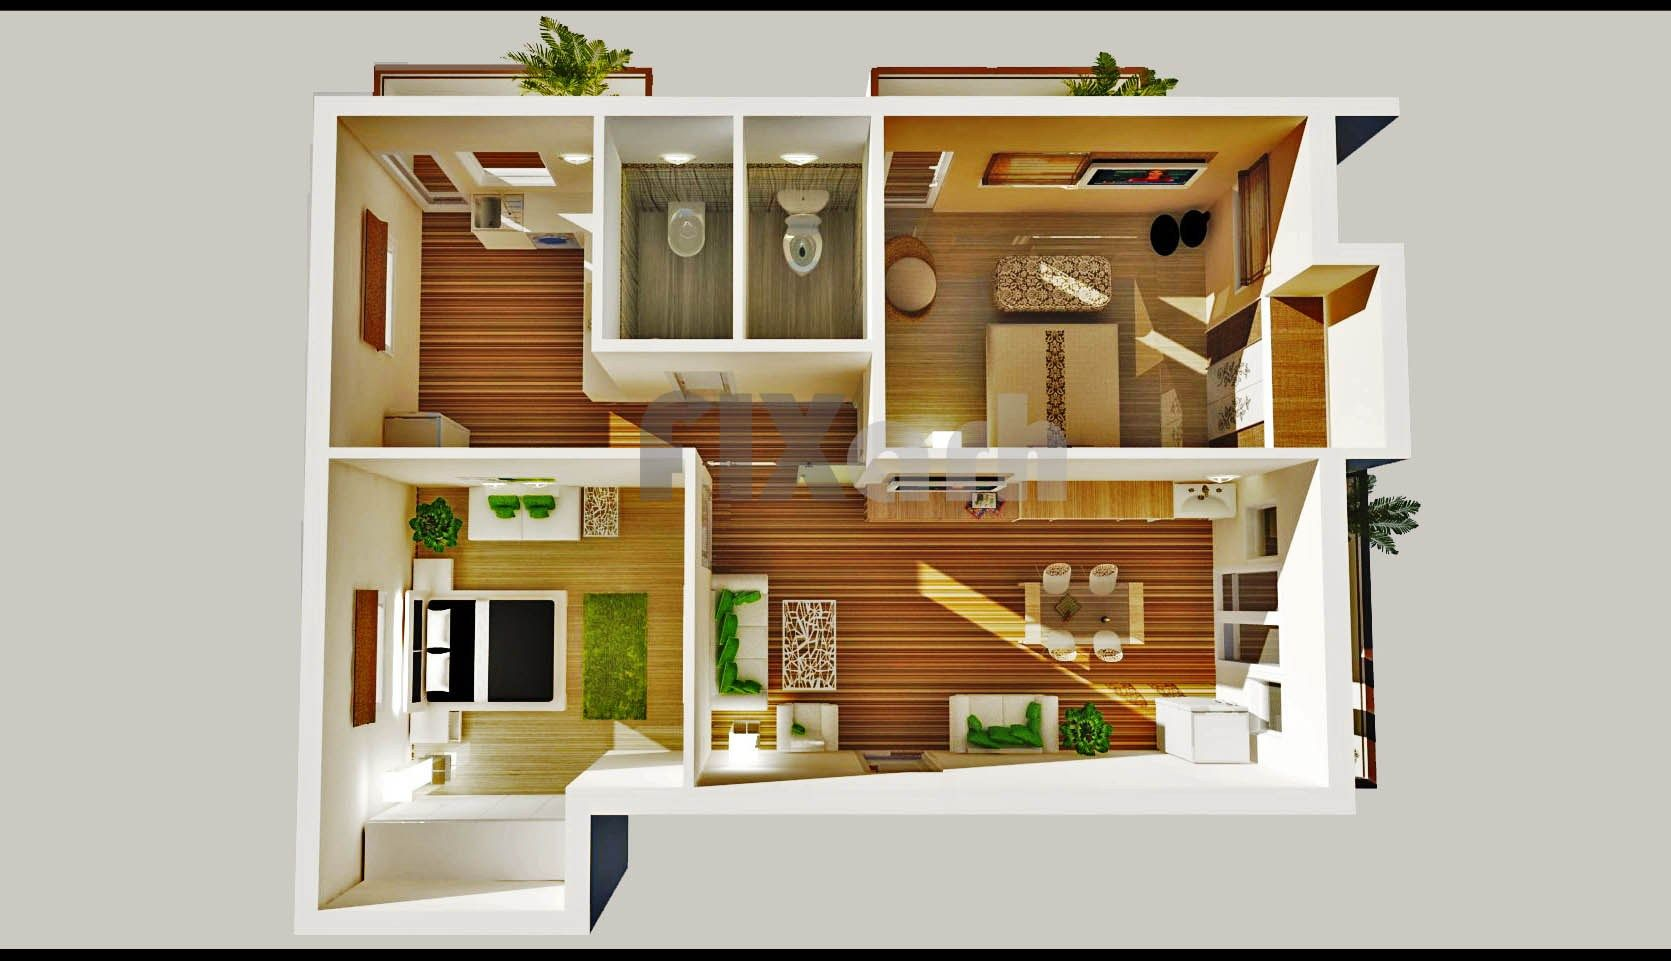 House design two bedroom - House Bedroom House Plans